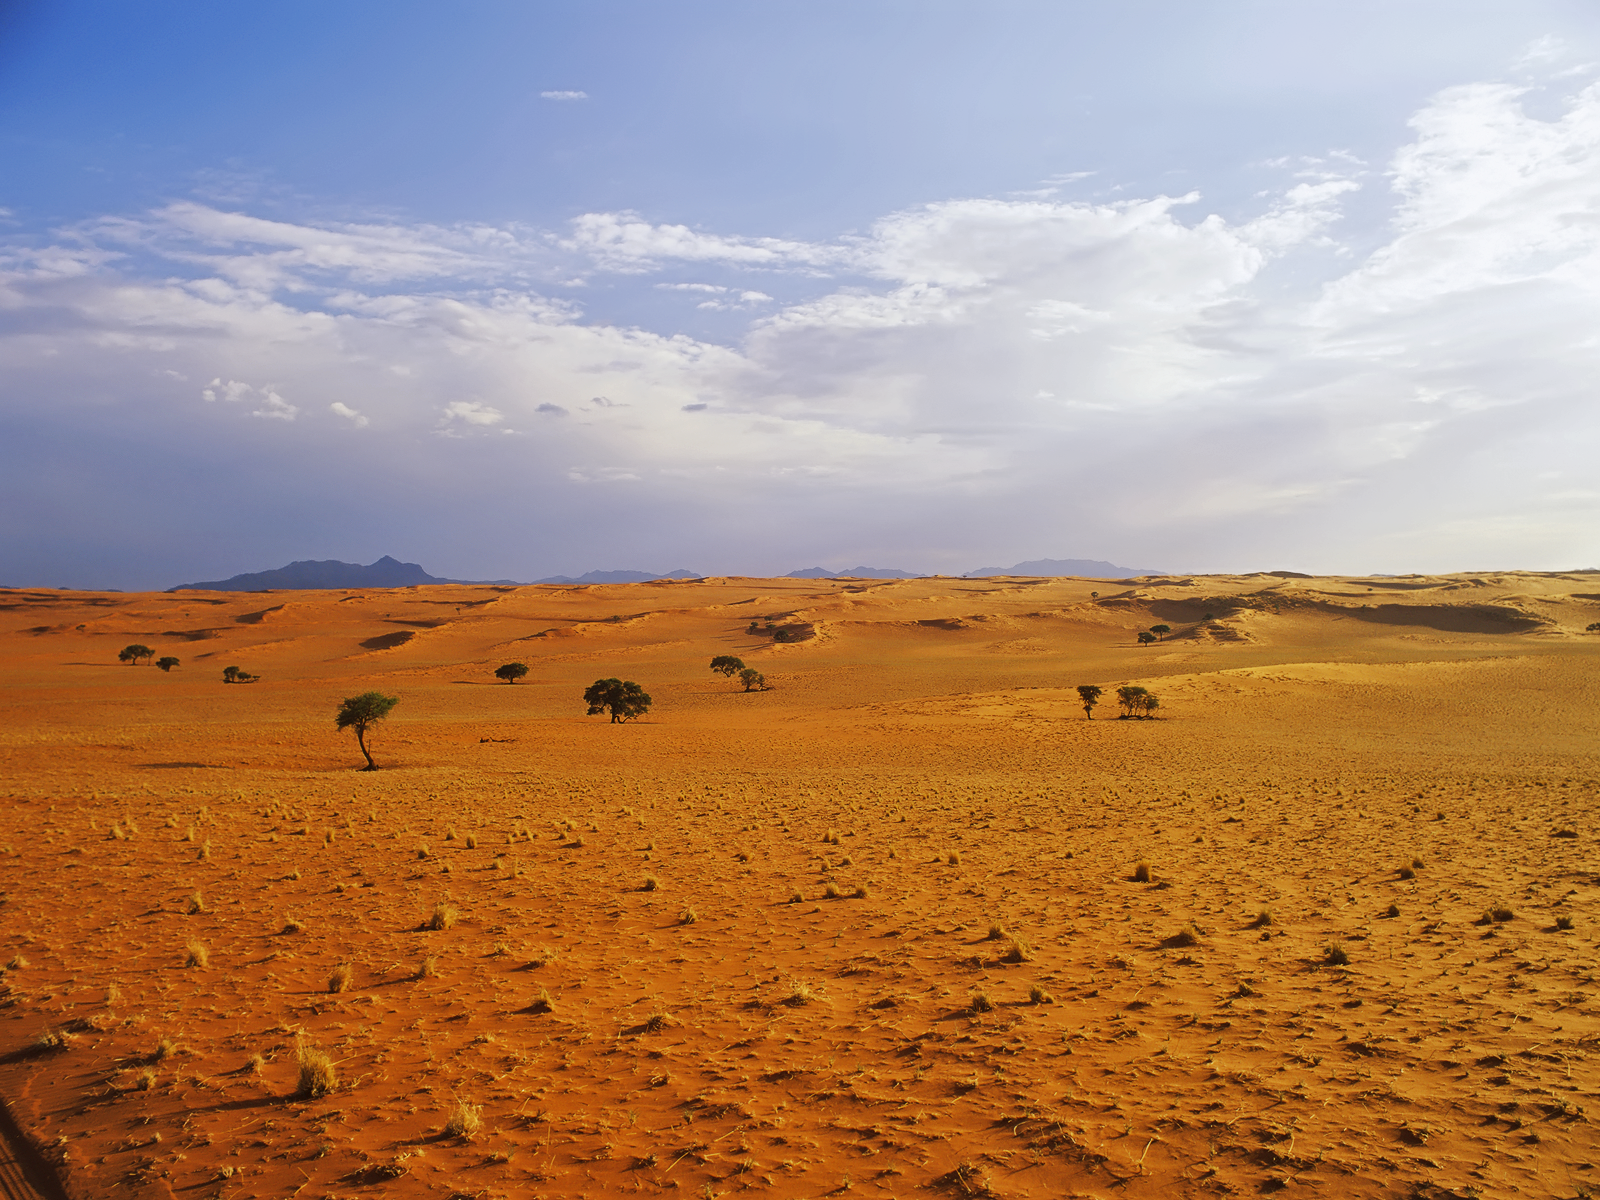 Desert Landscape wallpaper Conservatives Pee Themselves With Joy 1600x1200